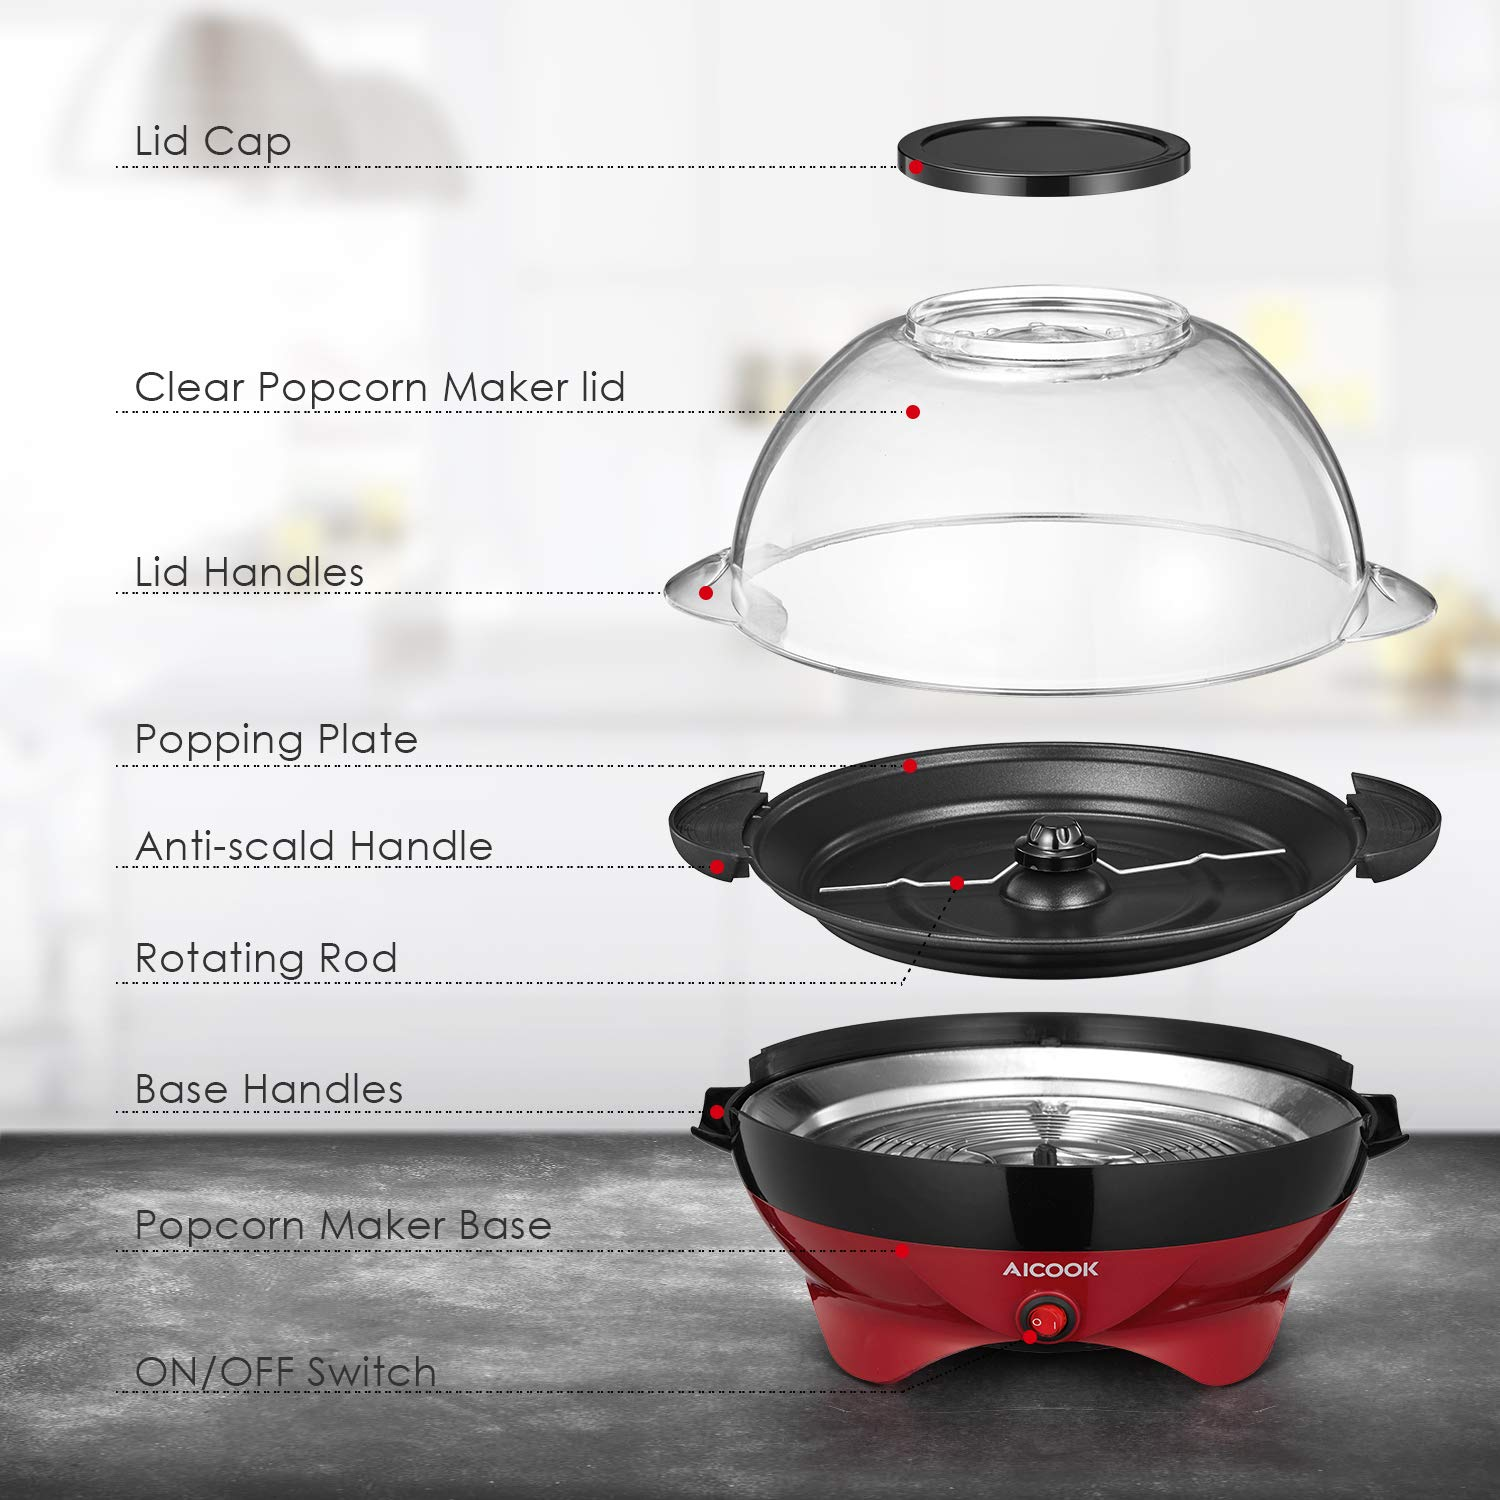 Popcorn Maker, AICOOK Electric Hot Oil Popcorn Popper Machine with Stirring Rod Offers Large Lid for Serving Bowl and Convenient Storage, 6-Quart, Red by AICOOK (Image #9)